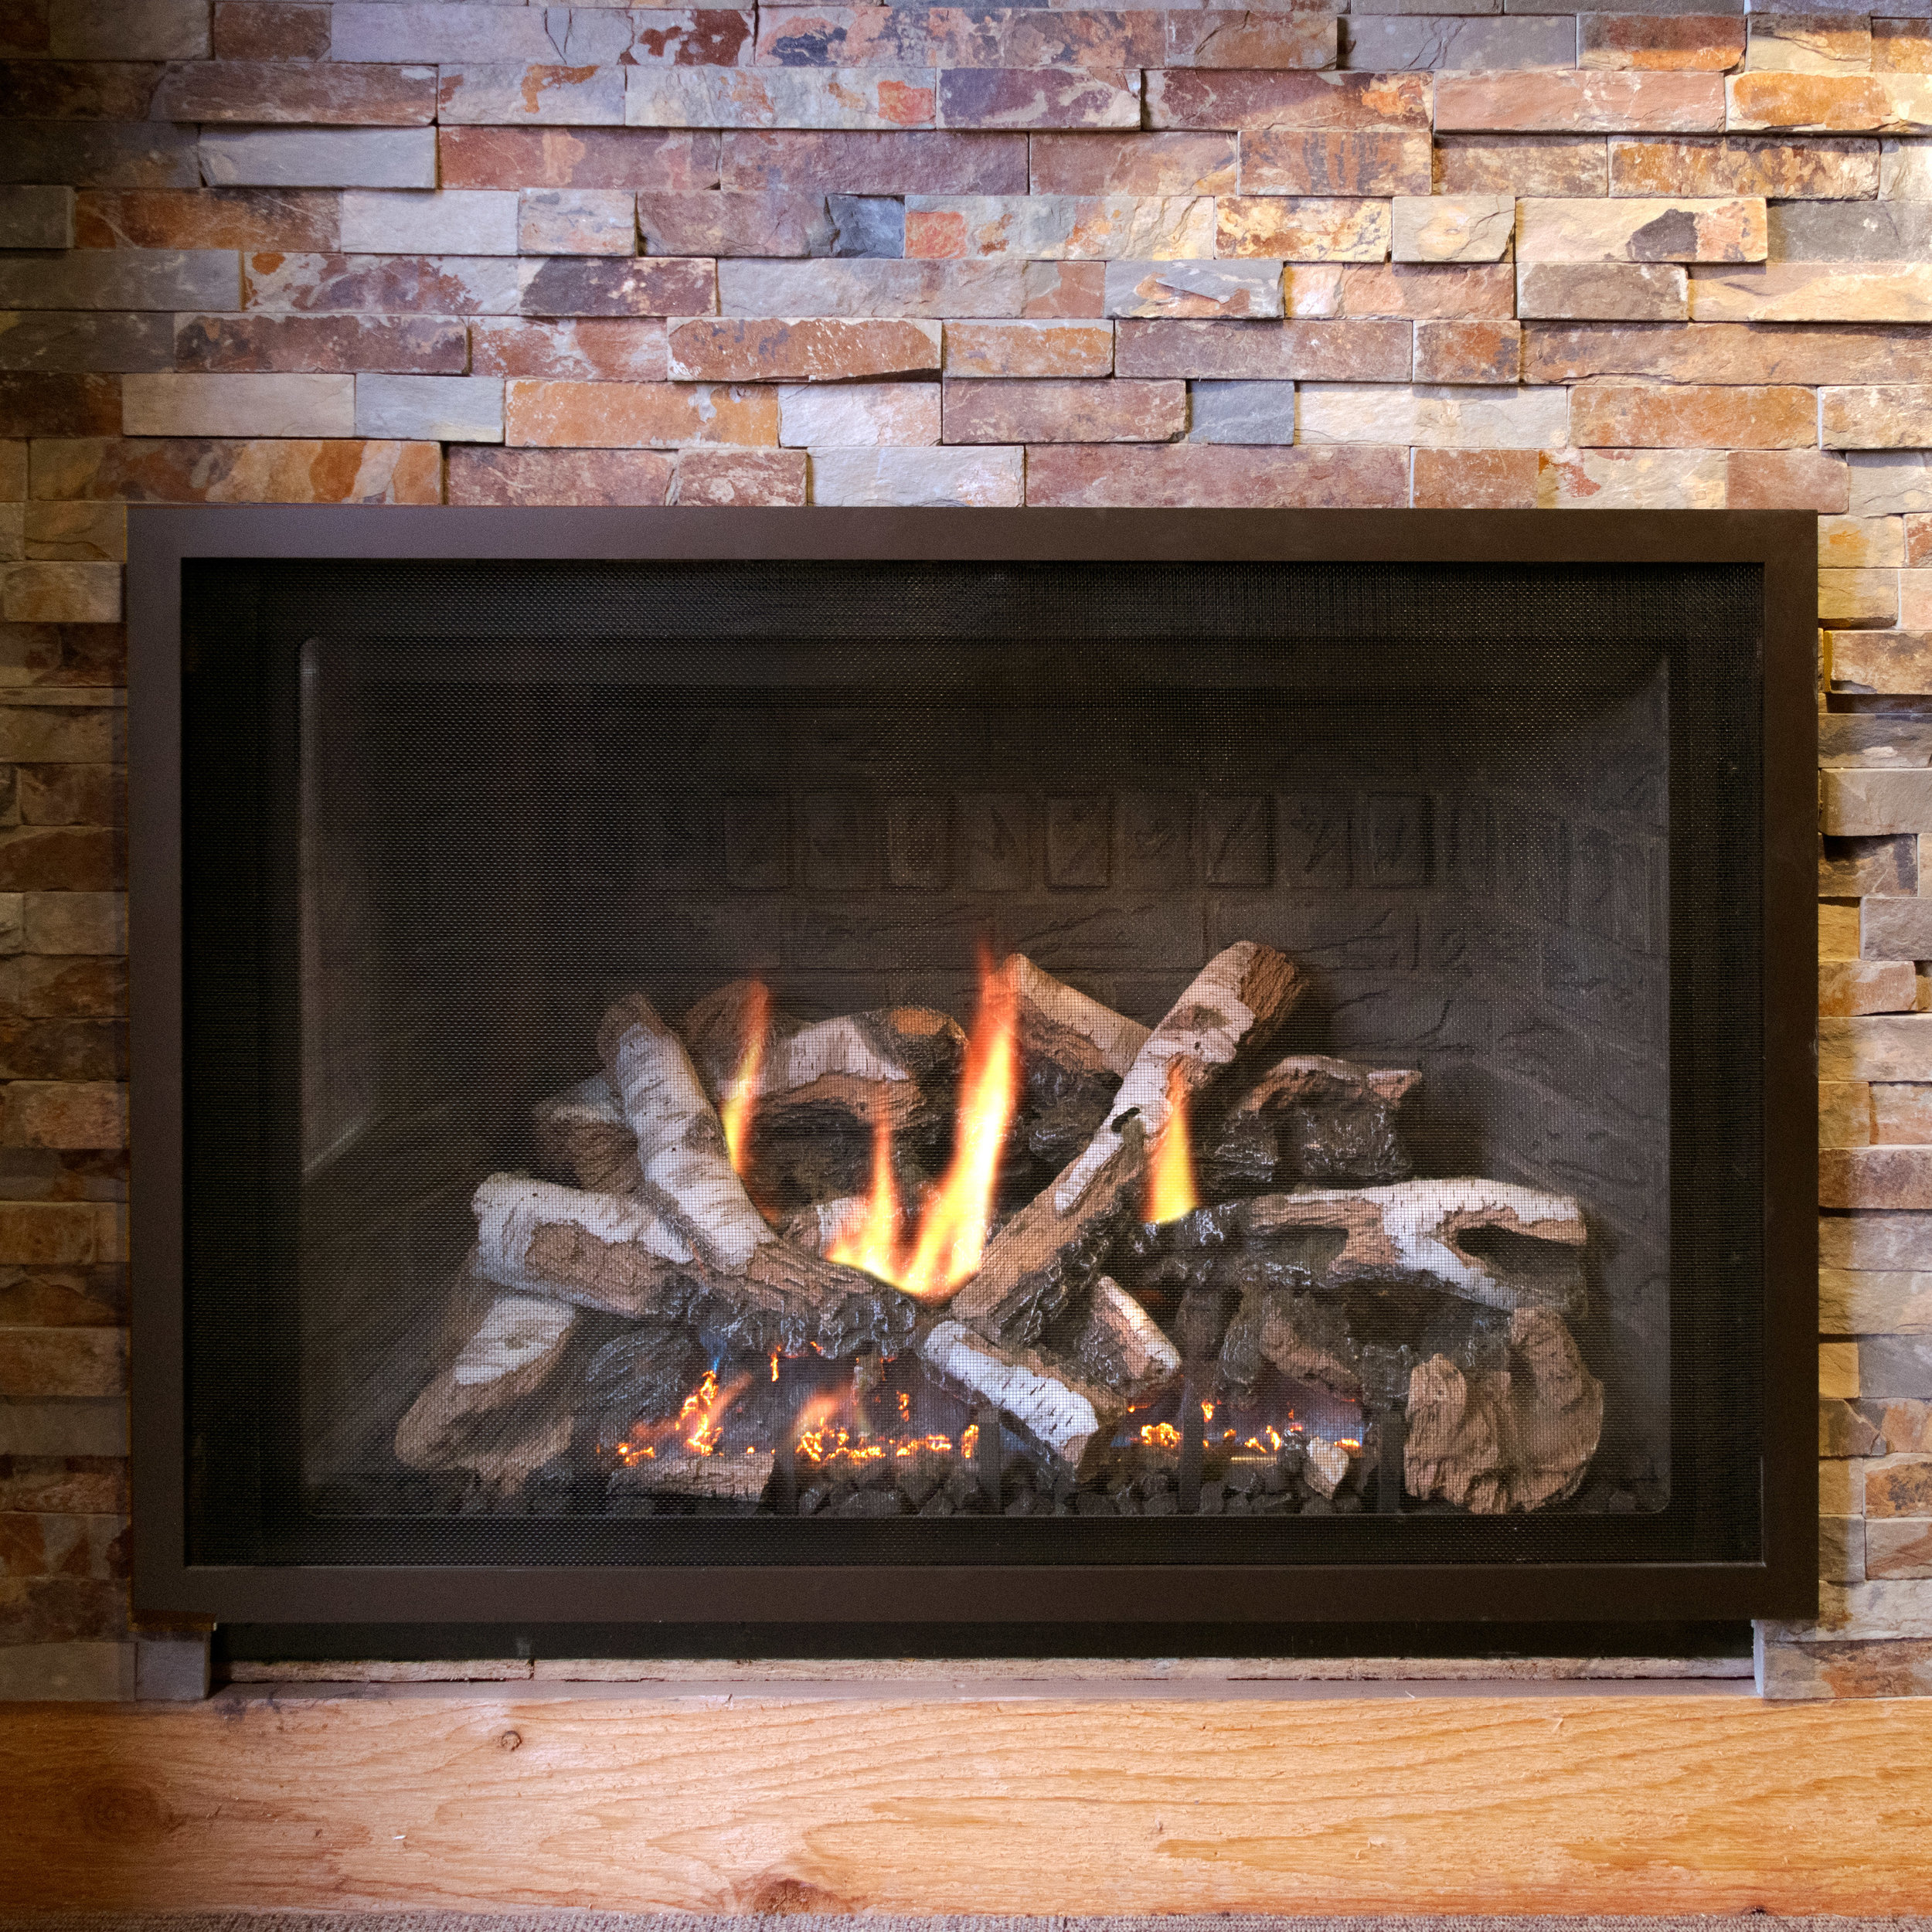 Mendota FV36 - ‧ Direct Vent Gas Fireplace - 40,000 BTU‧ Slate Gray Solider Course Firebox Panels‧ Solo Grace Front – Oil Rubbed Bronze‧ Birch Logs‧ ProFlame2 Full Function Remote Control‧ Fan‧ Superior quality‧ Traditionally oriented Fullview firebox‧ Large selection of Fronts – Colors